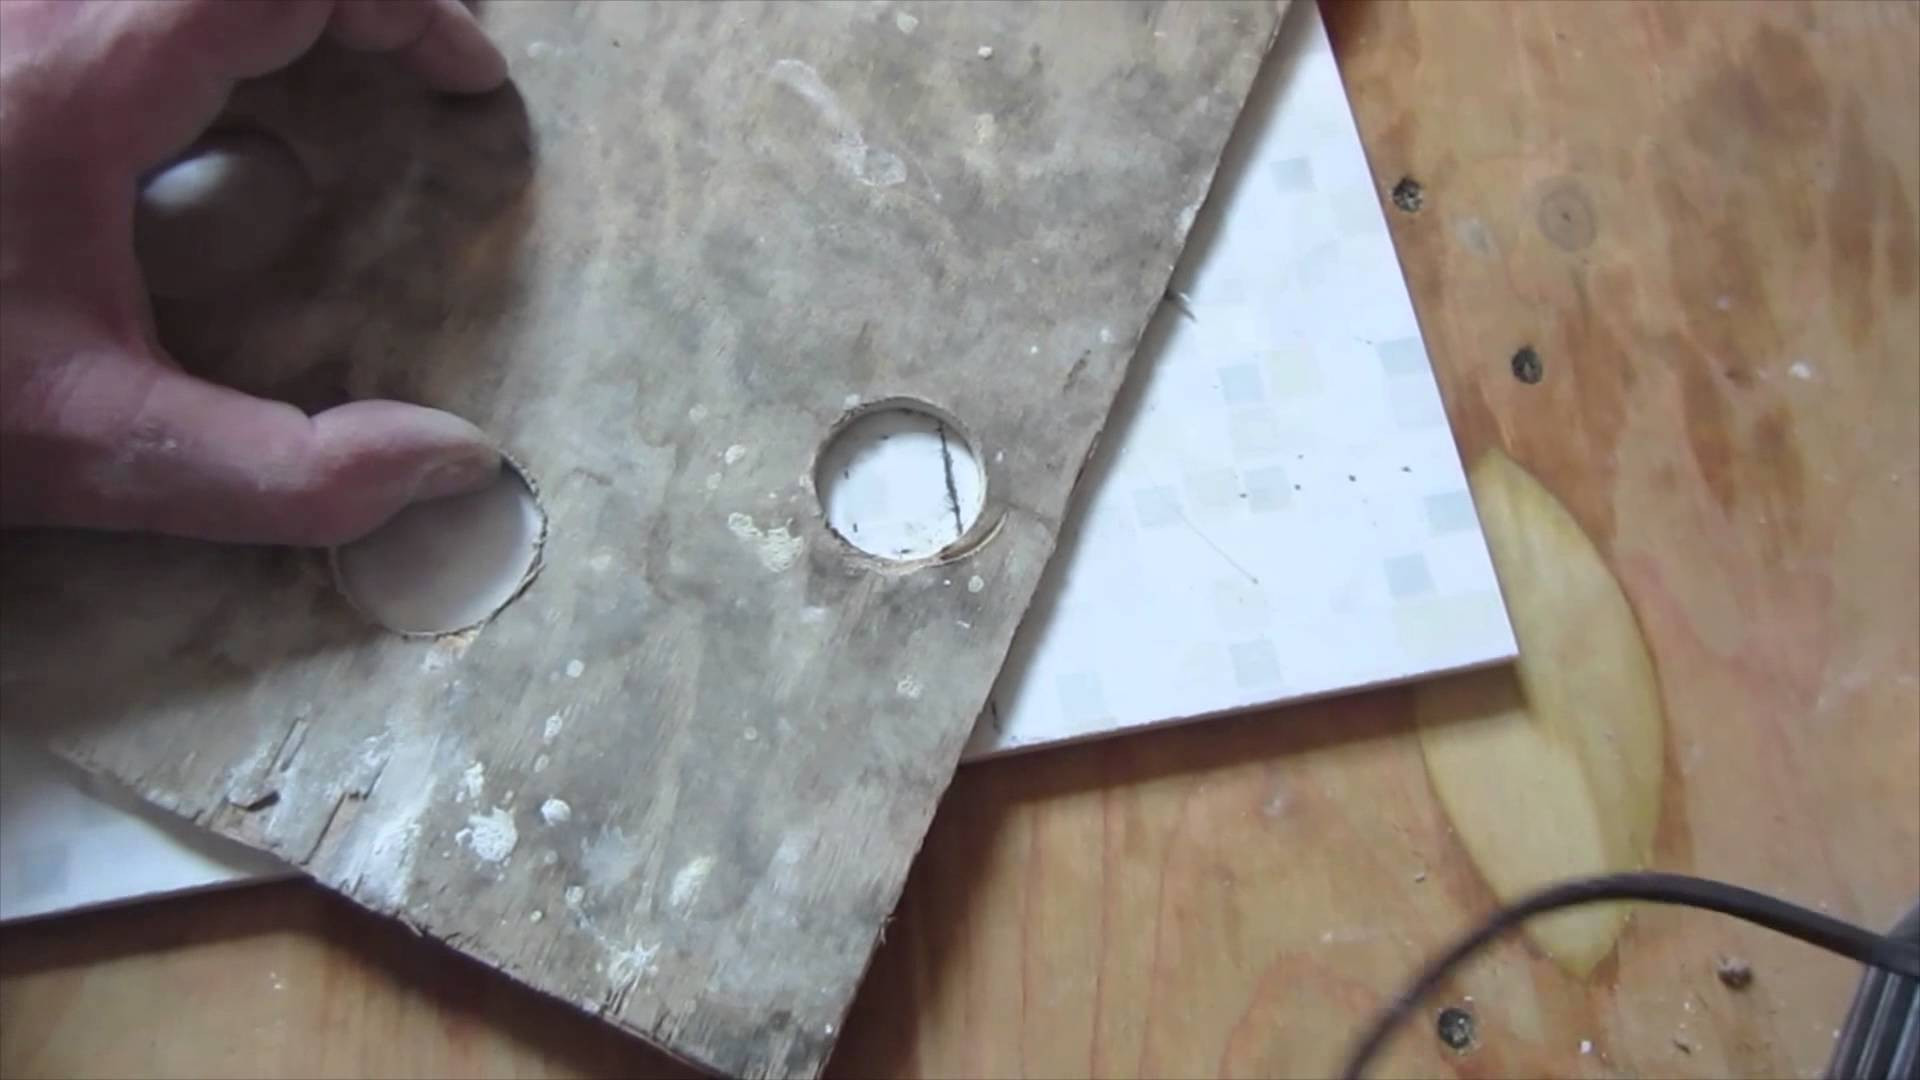 hardwood floor installation boston of how to drill a hole with a core bit in ceramic tile porcelain tile with how to drill a hole with a core bit in ceramic tile porcelain tile drilling youtube